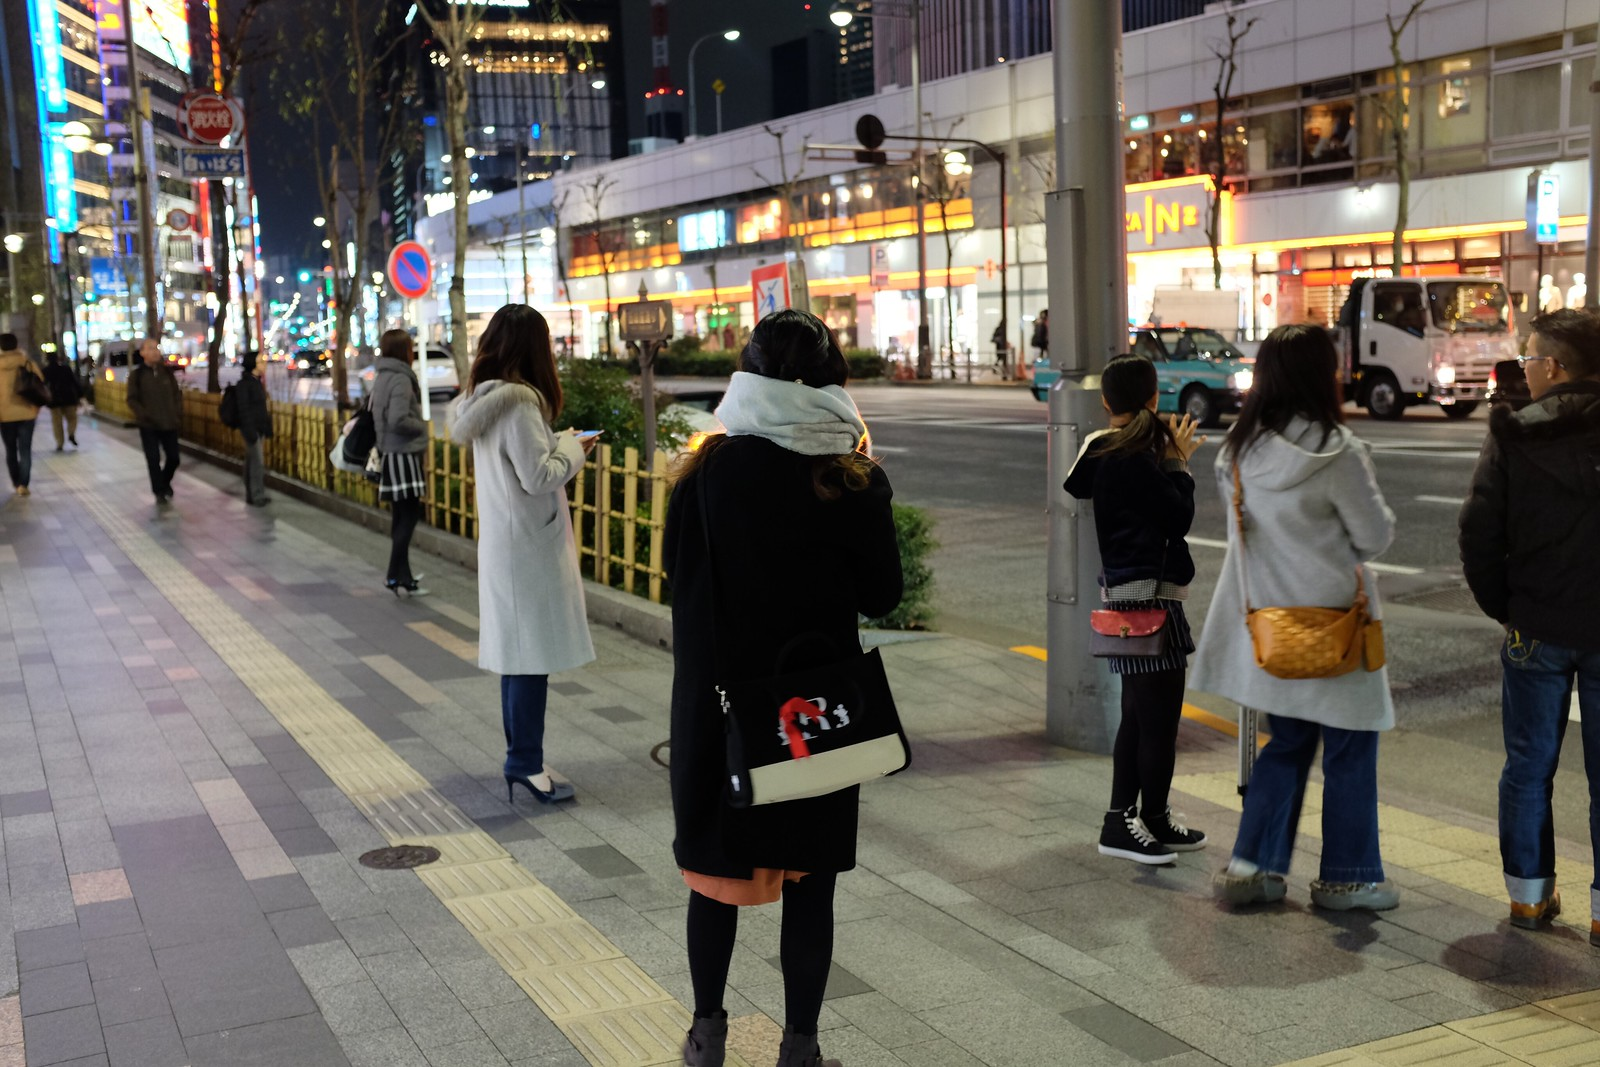 The night at Ginza in Tokyo, Japan.